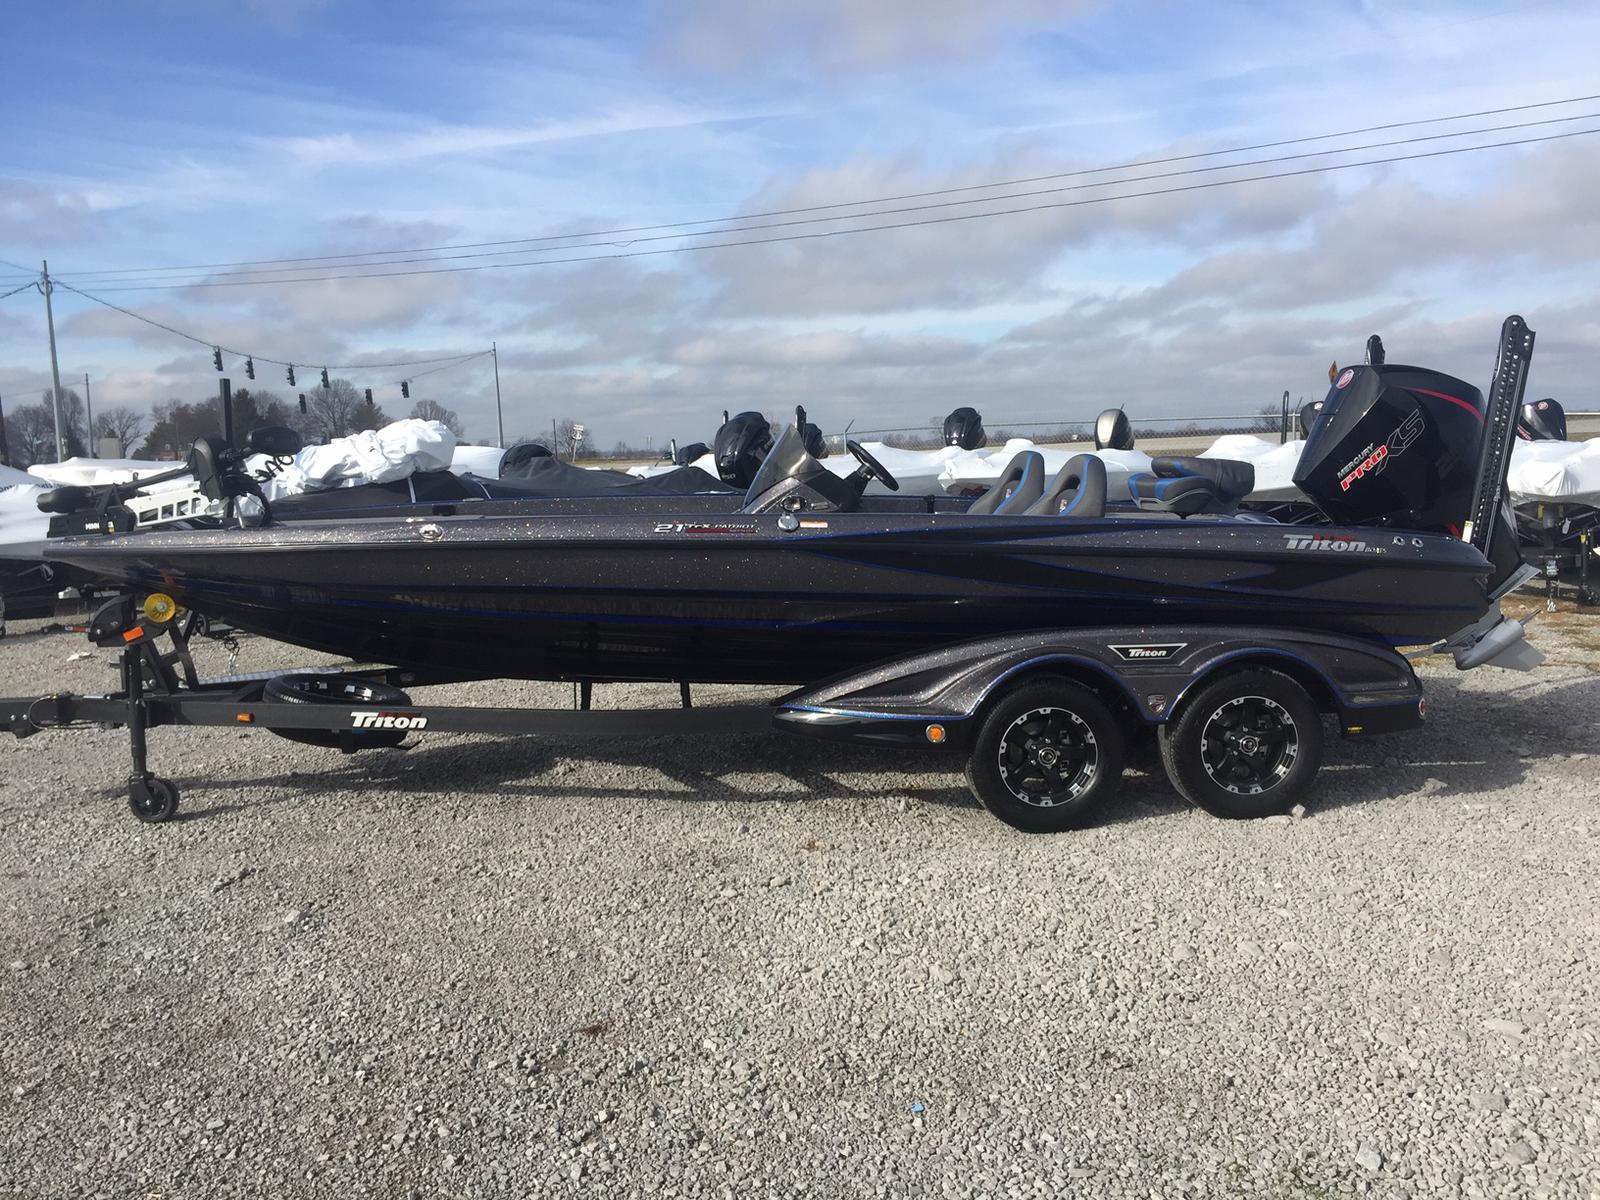 Triton 21 TrX Patriot 250 mercury ProXS